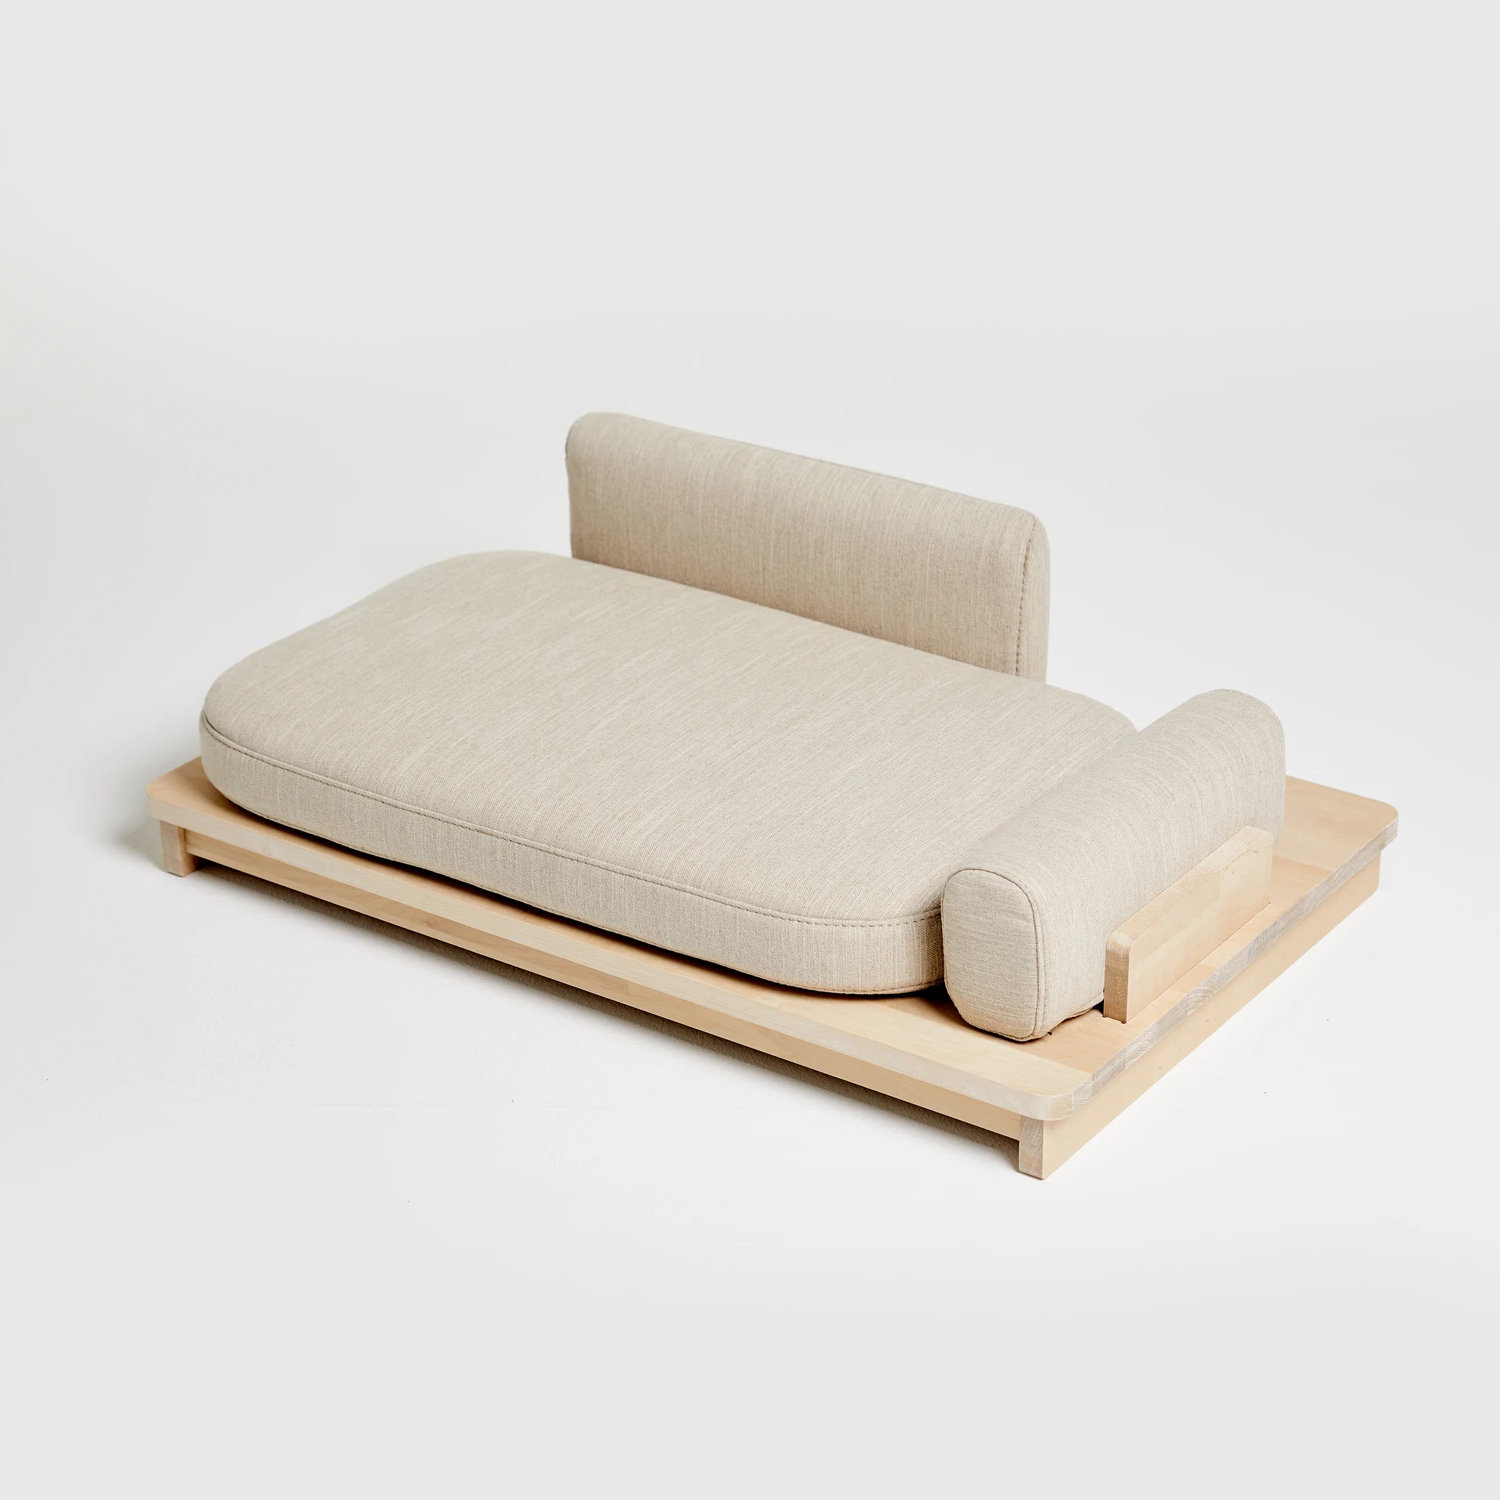 Linden Day Dog Bed: Oatmeal